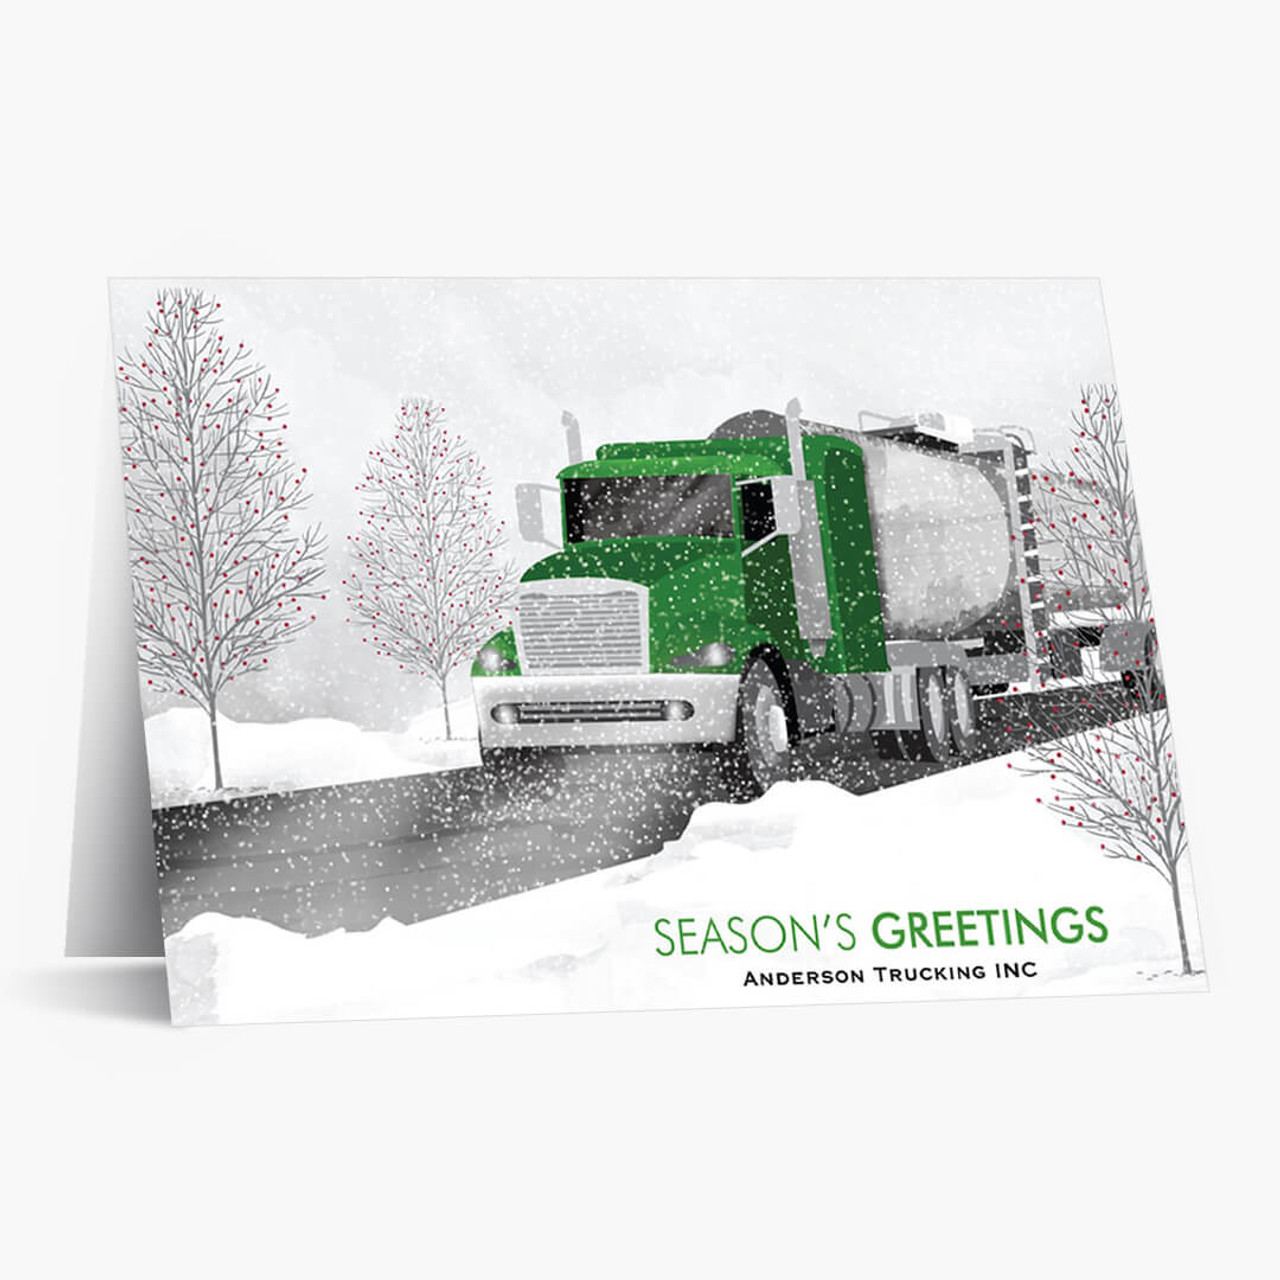 Green Cab Tanker Truck Christmas Card